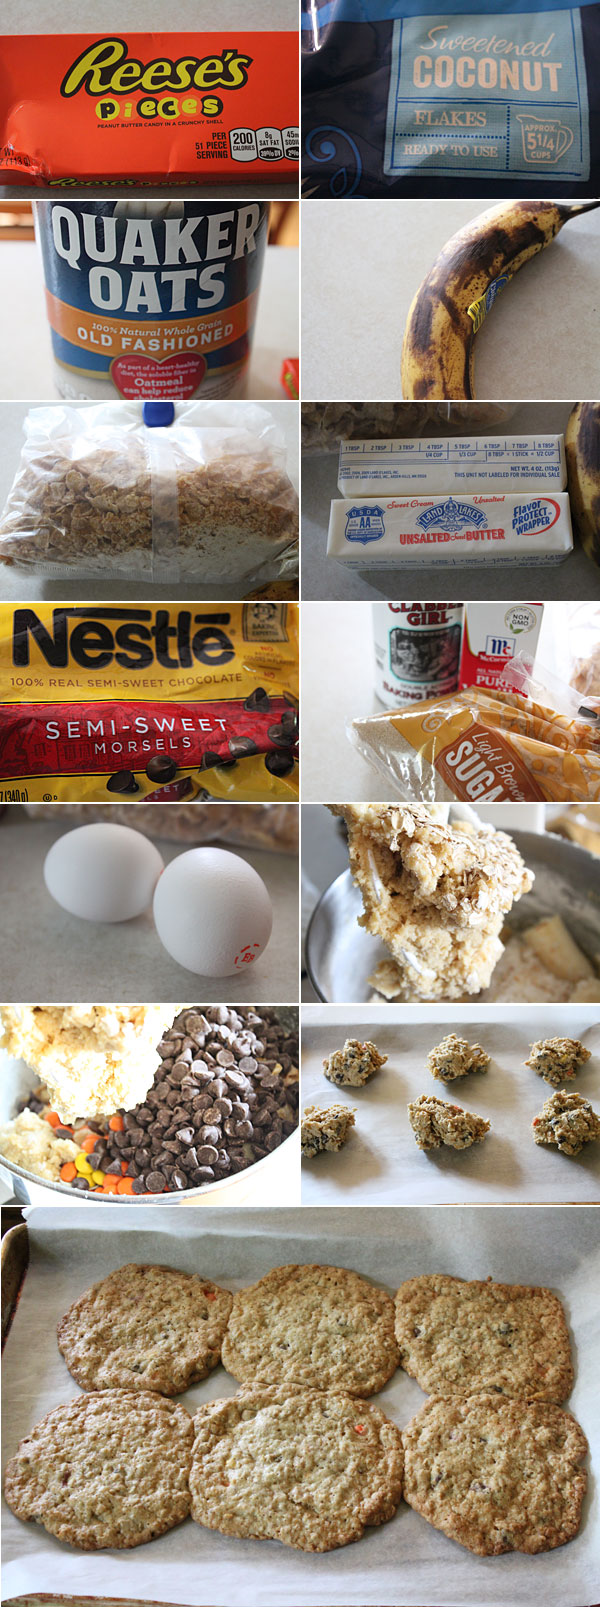 How to make Ranger Cookies